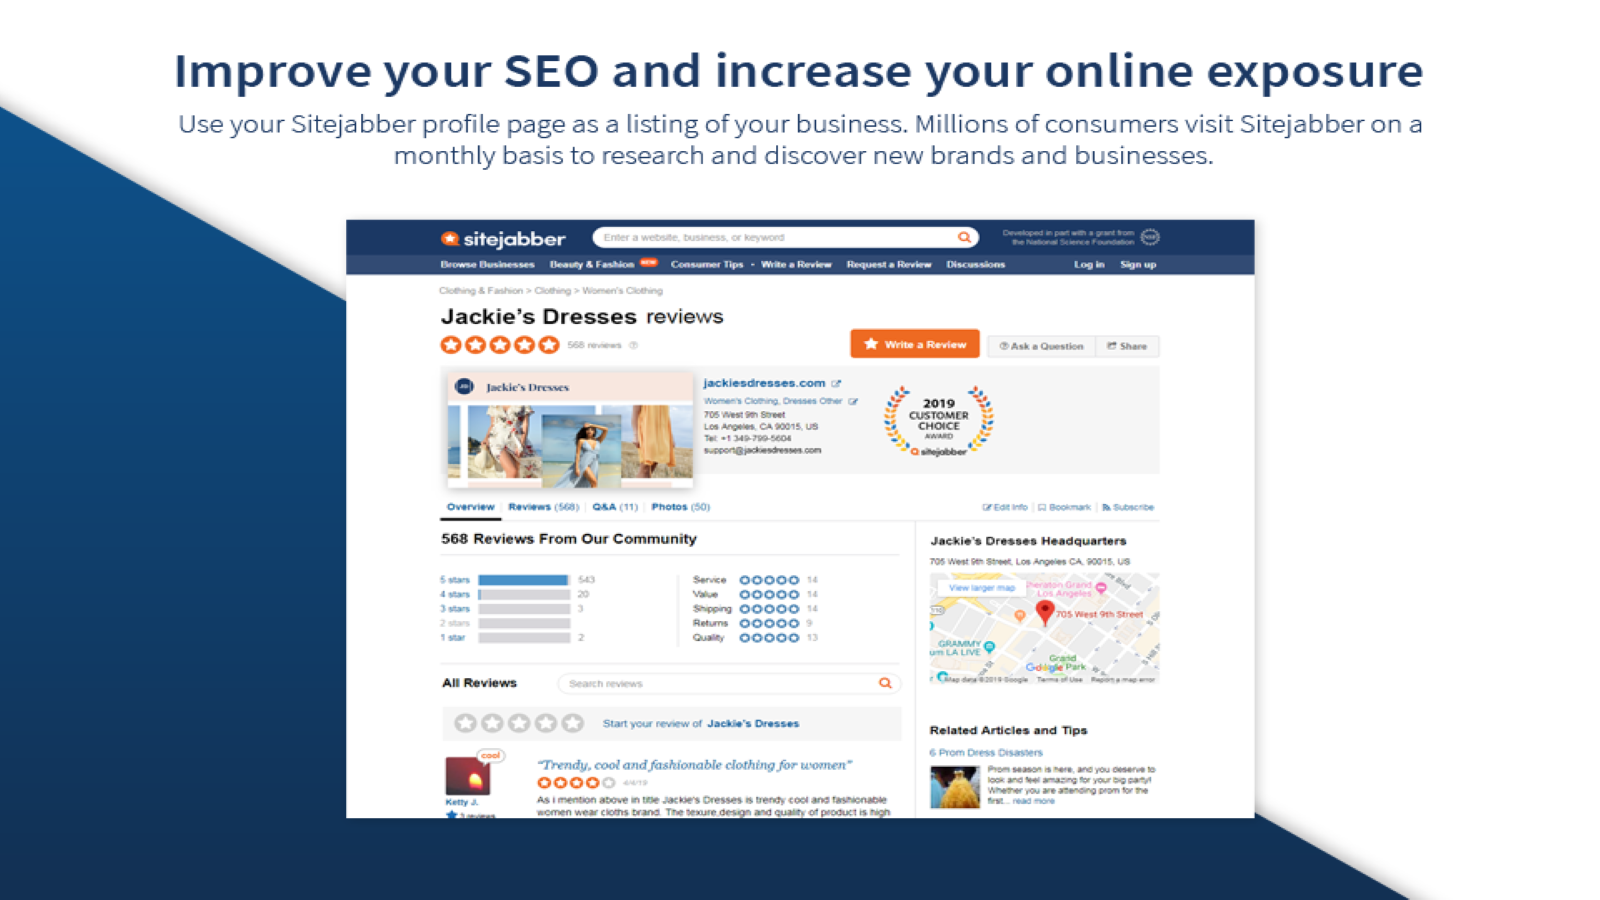 Improve your SEO and increase your online exposure